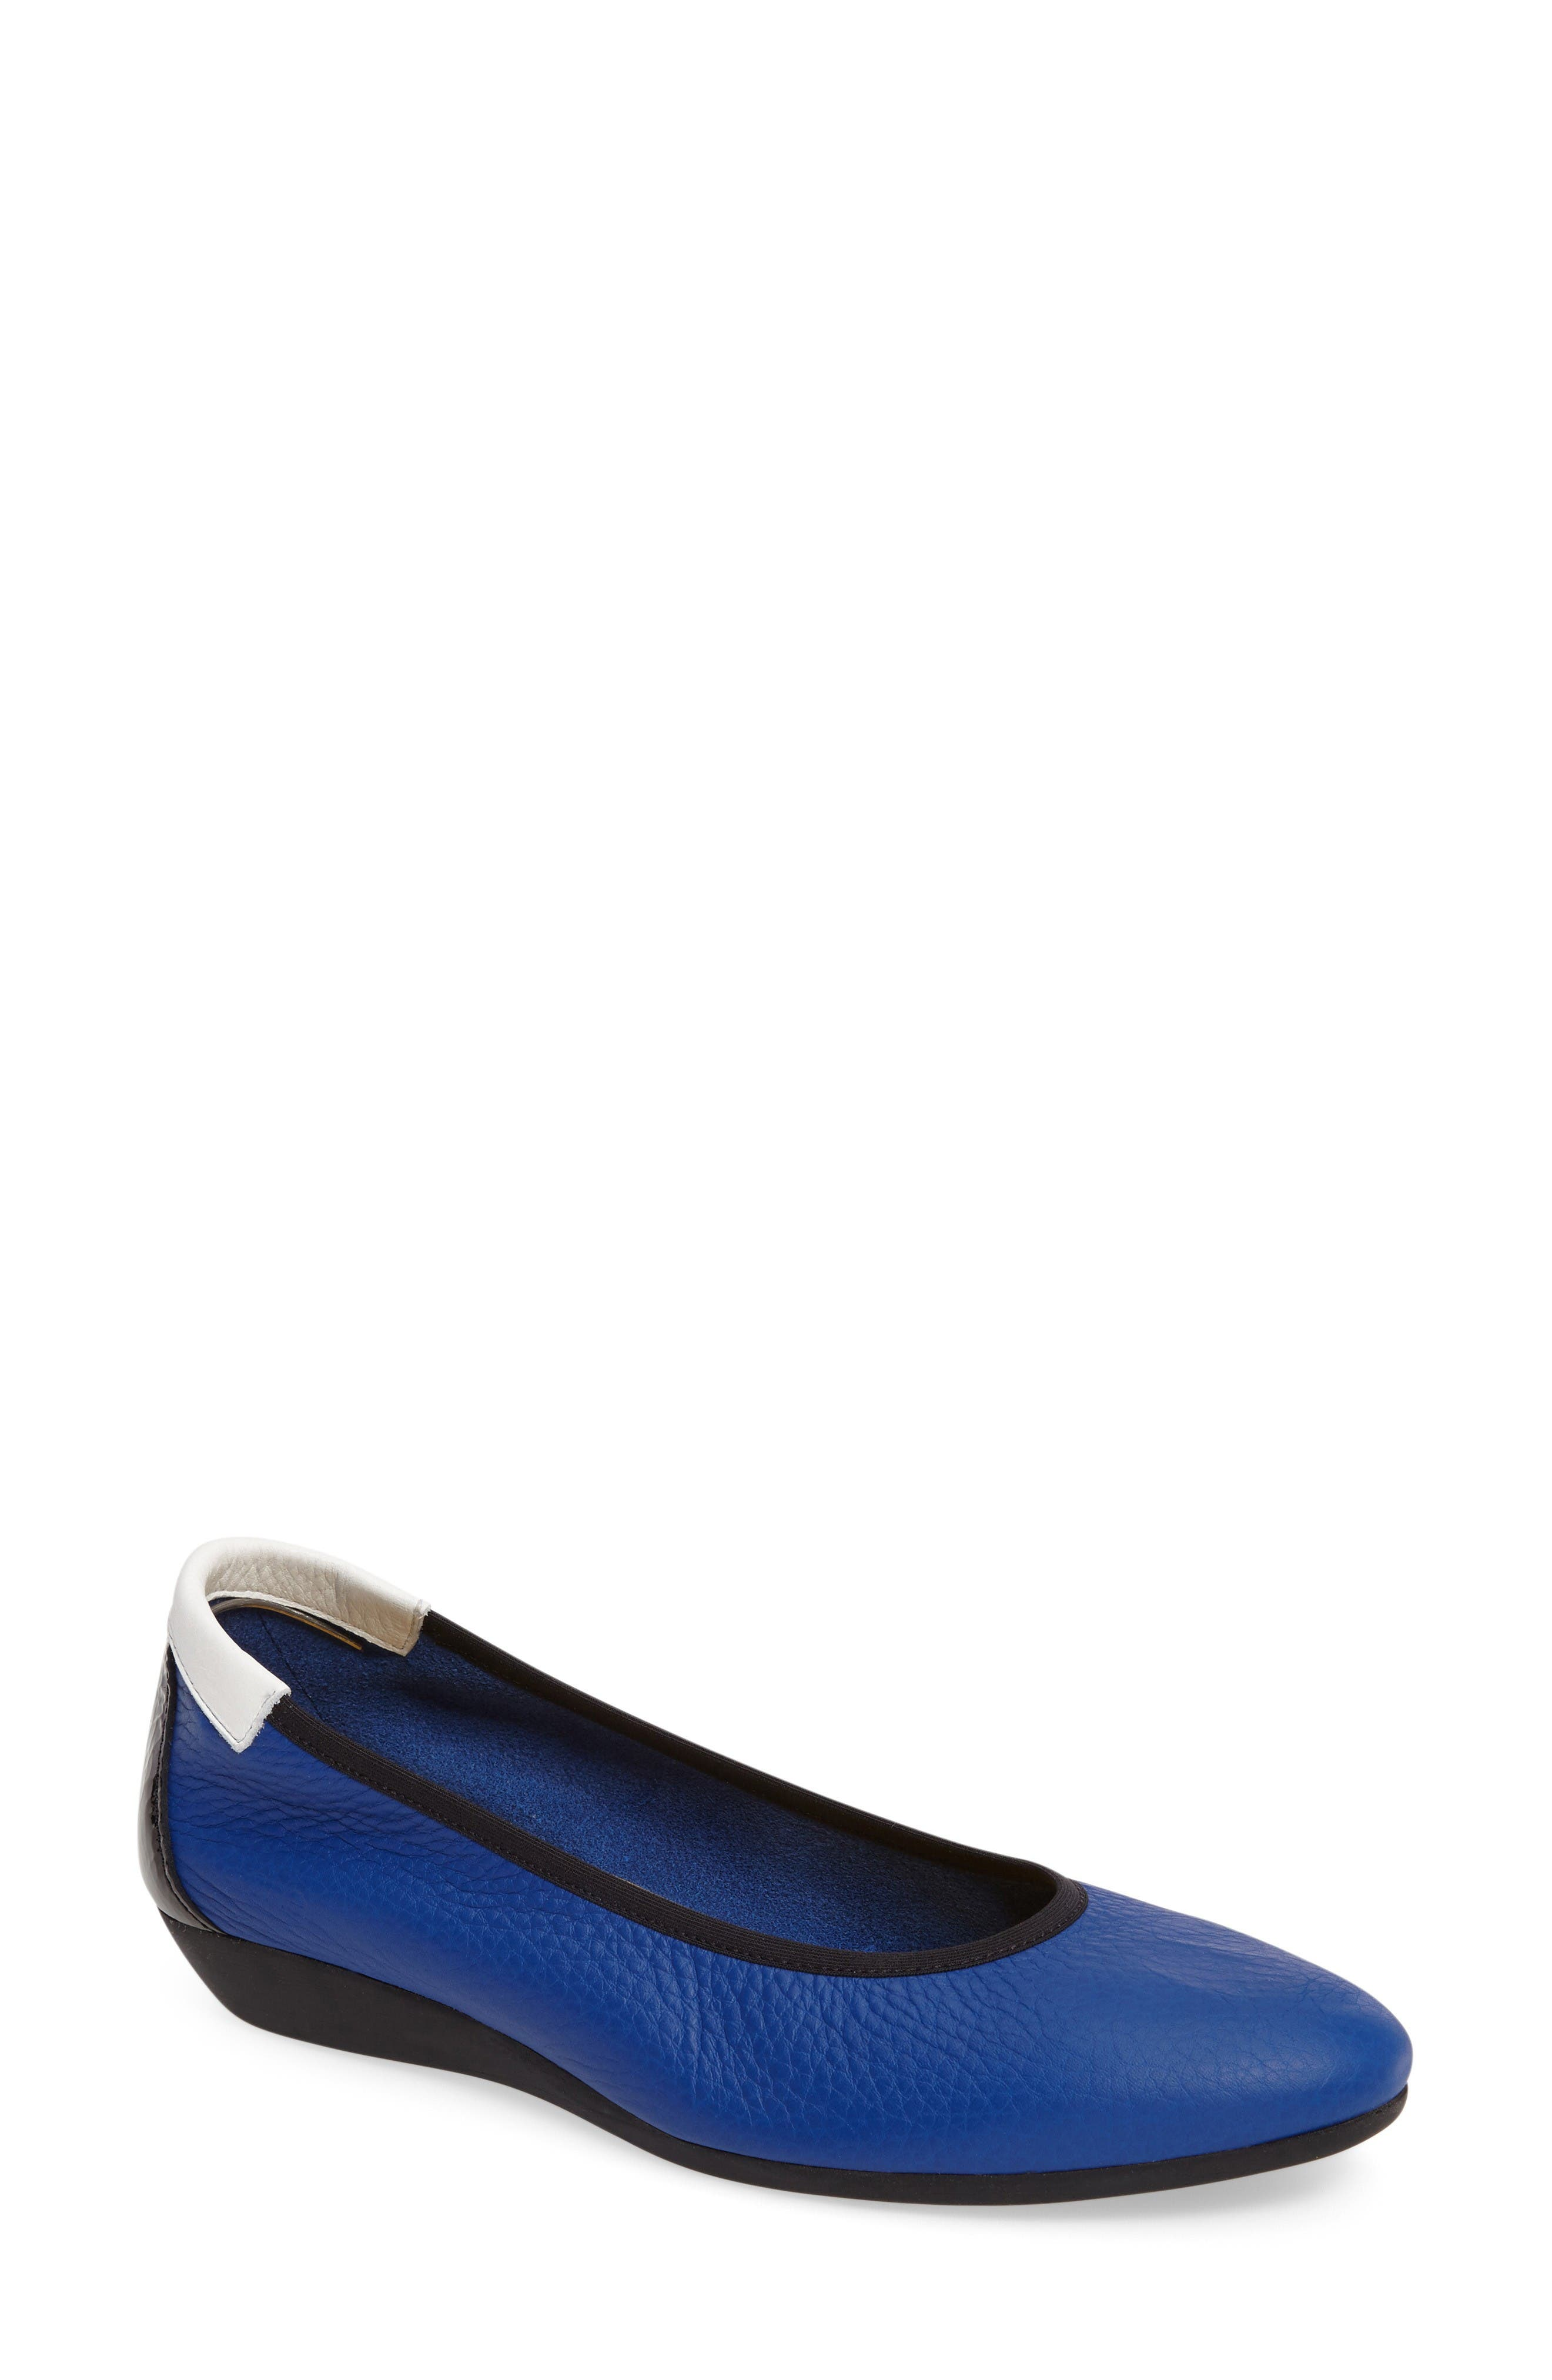 ARCHE 'Onely' Ballet Wedge